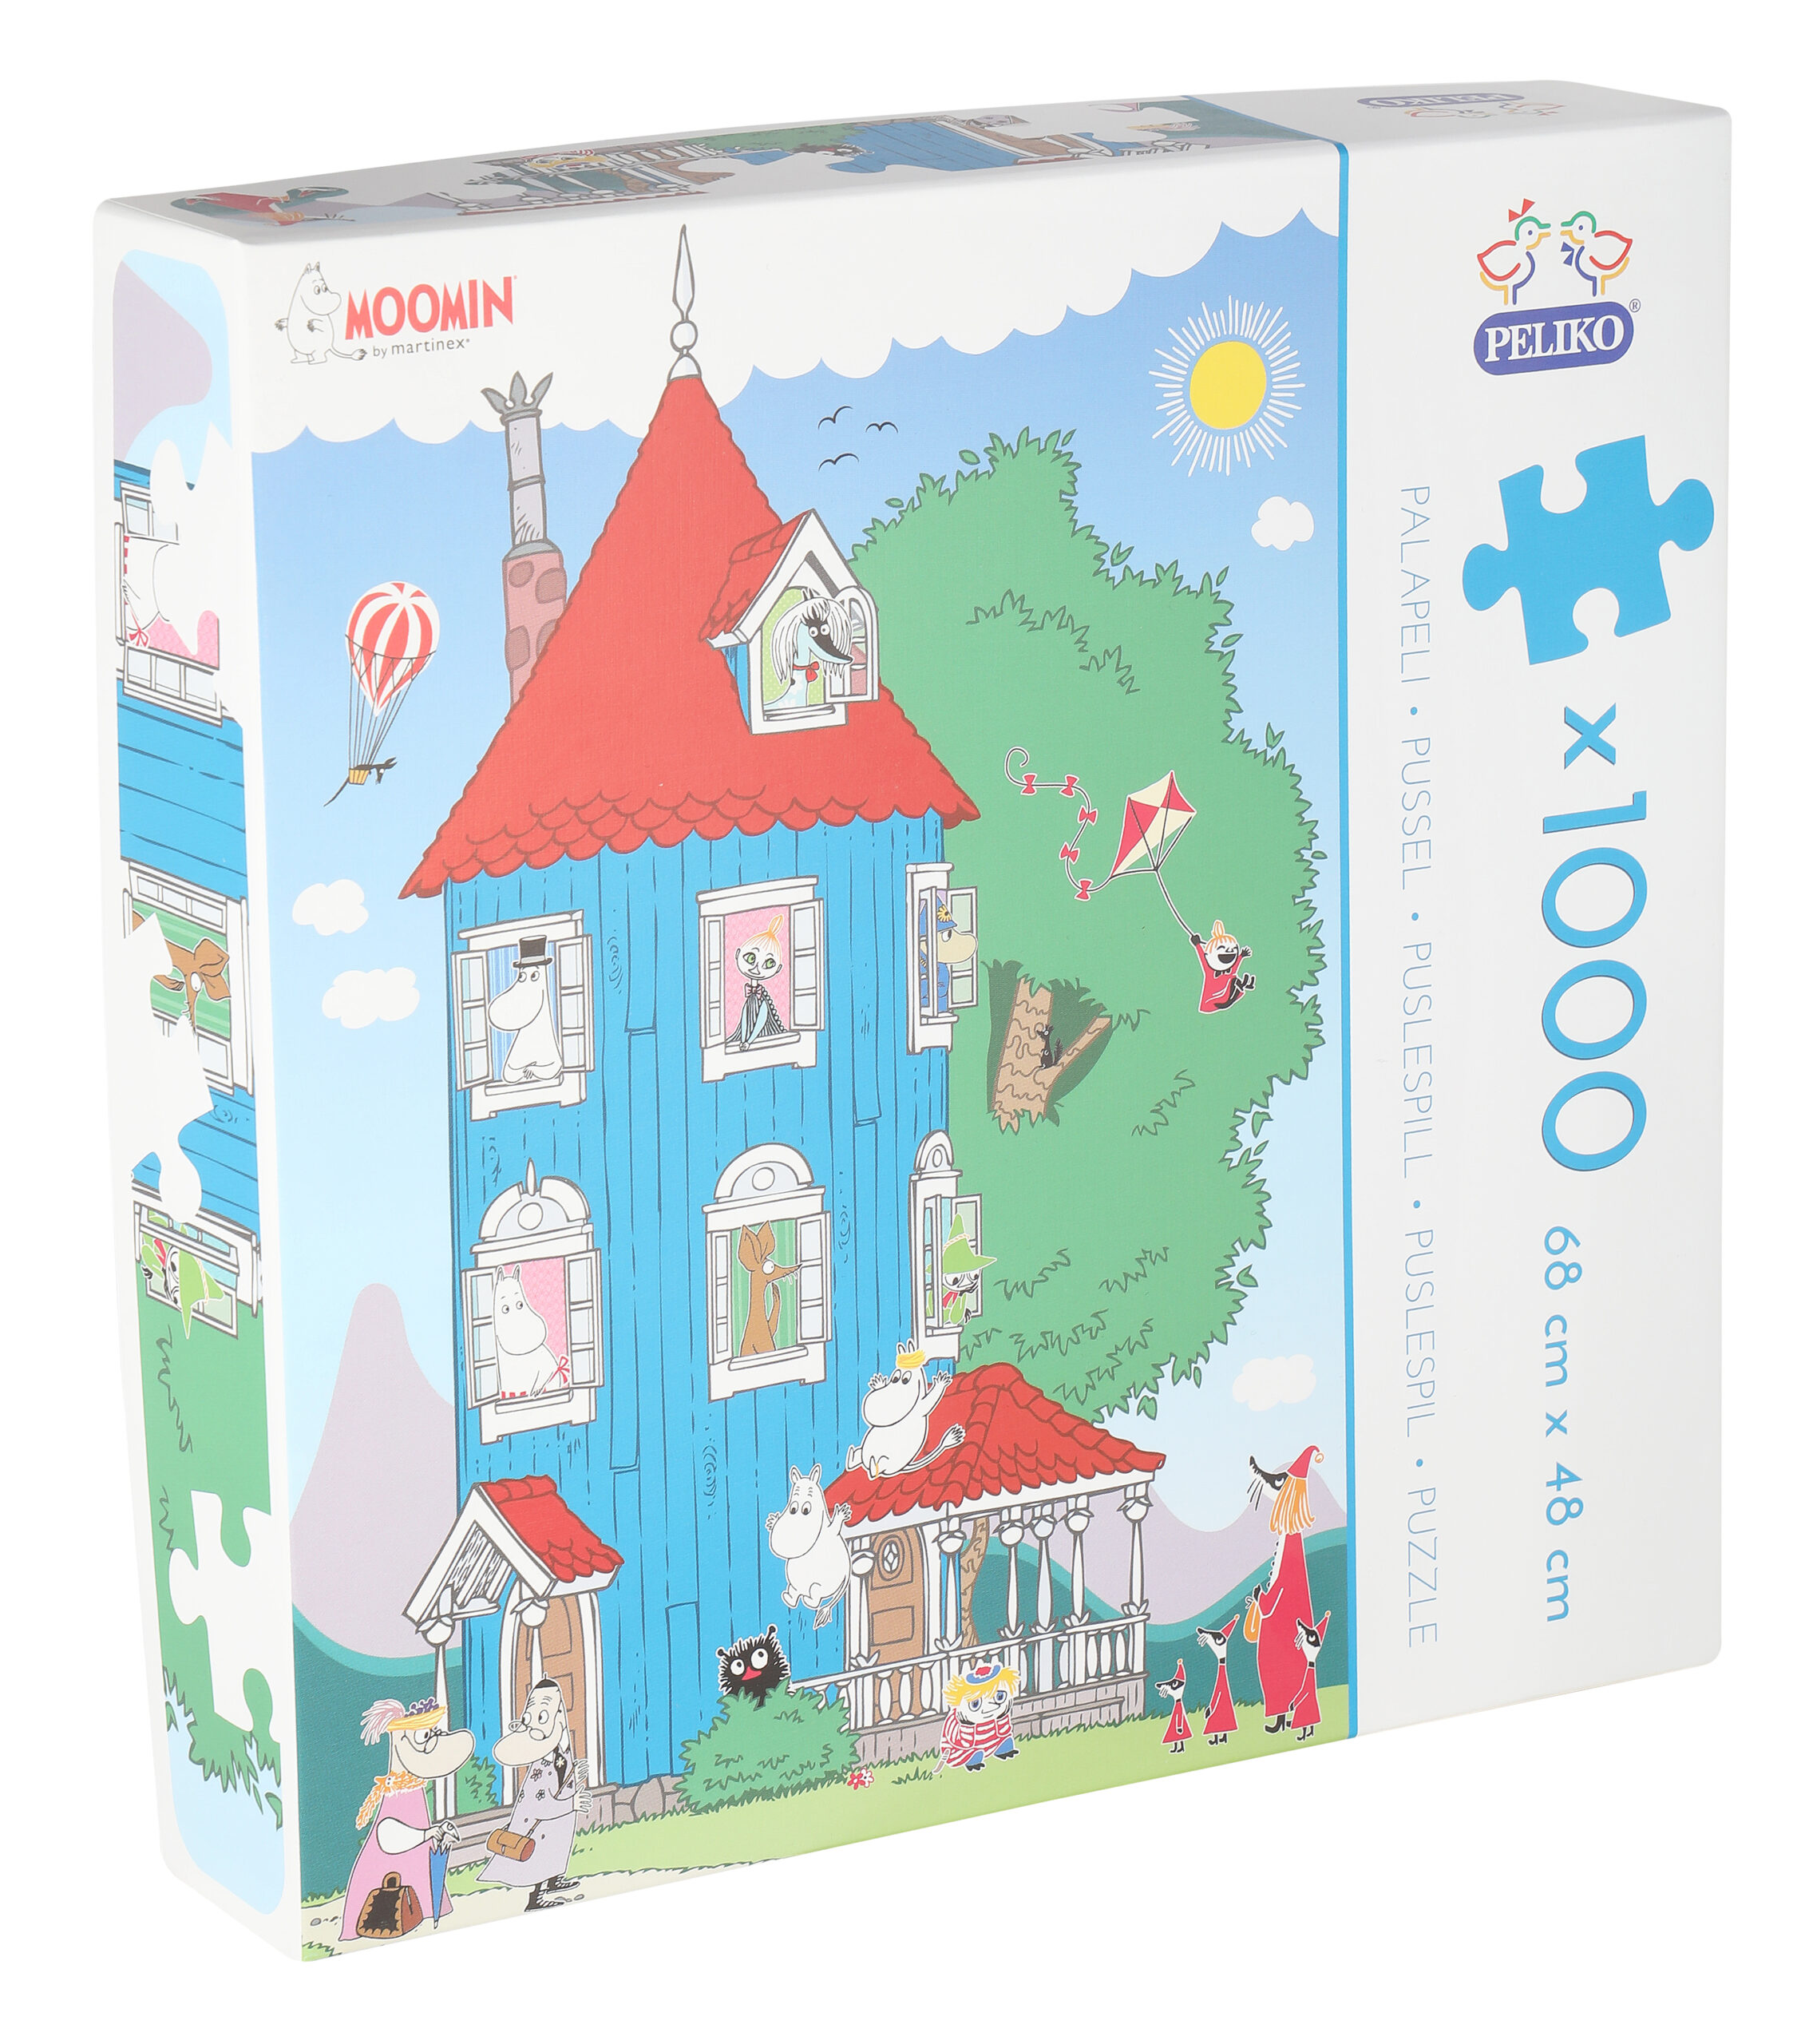 Martinex Moomin Jigsaw Puzzle 1000 Pieces Moominhouse